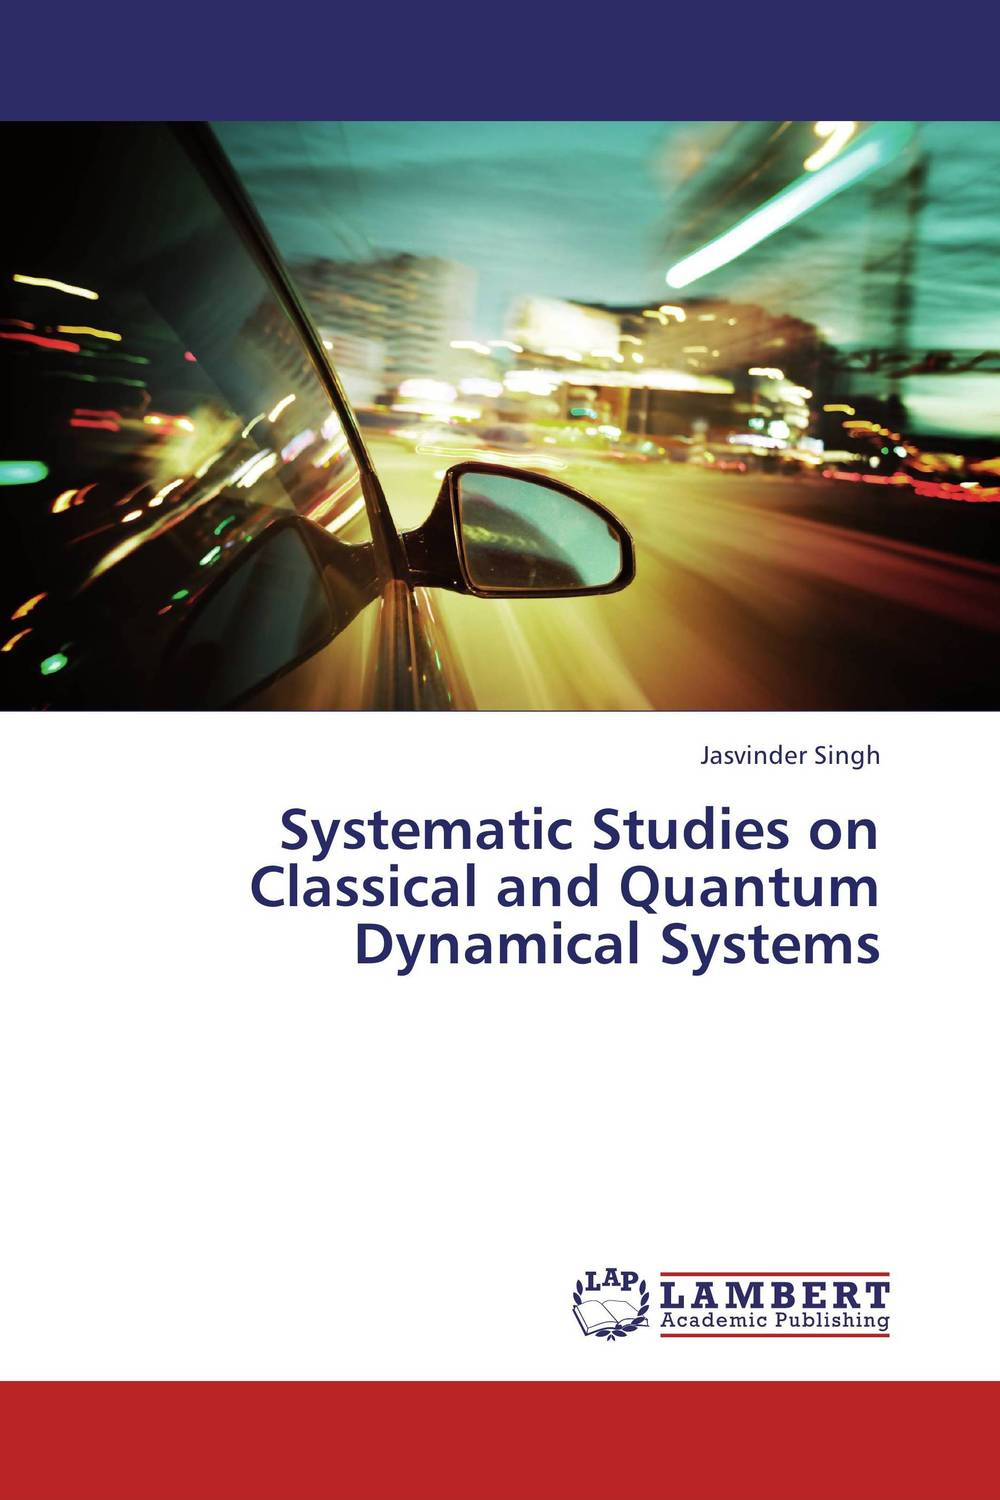 Systematic Studies on Classical and Quantum Dynamical Systems per olov lowden quantum systems in chemistry and physics part i 31